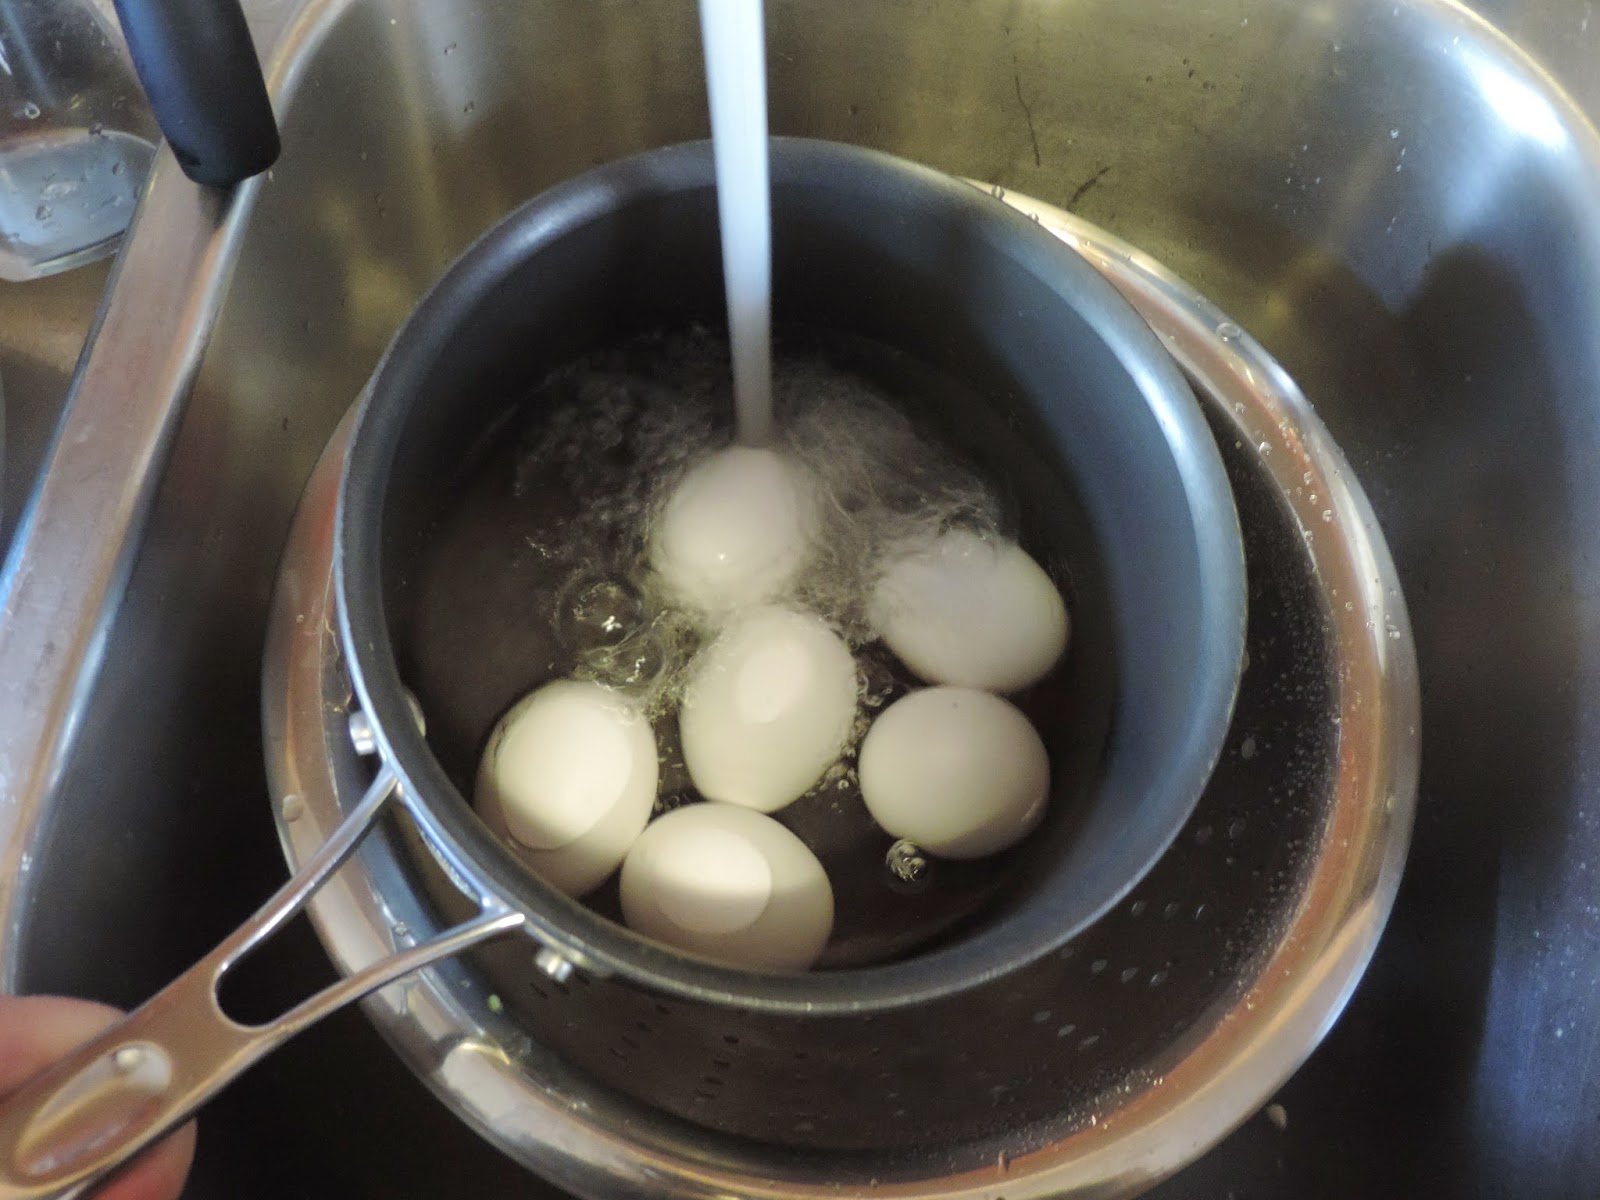 Water being added to the pot with the eggs in it.